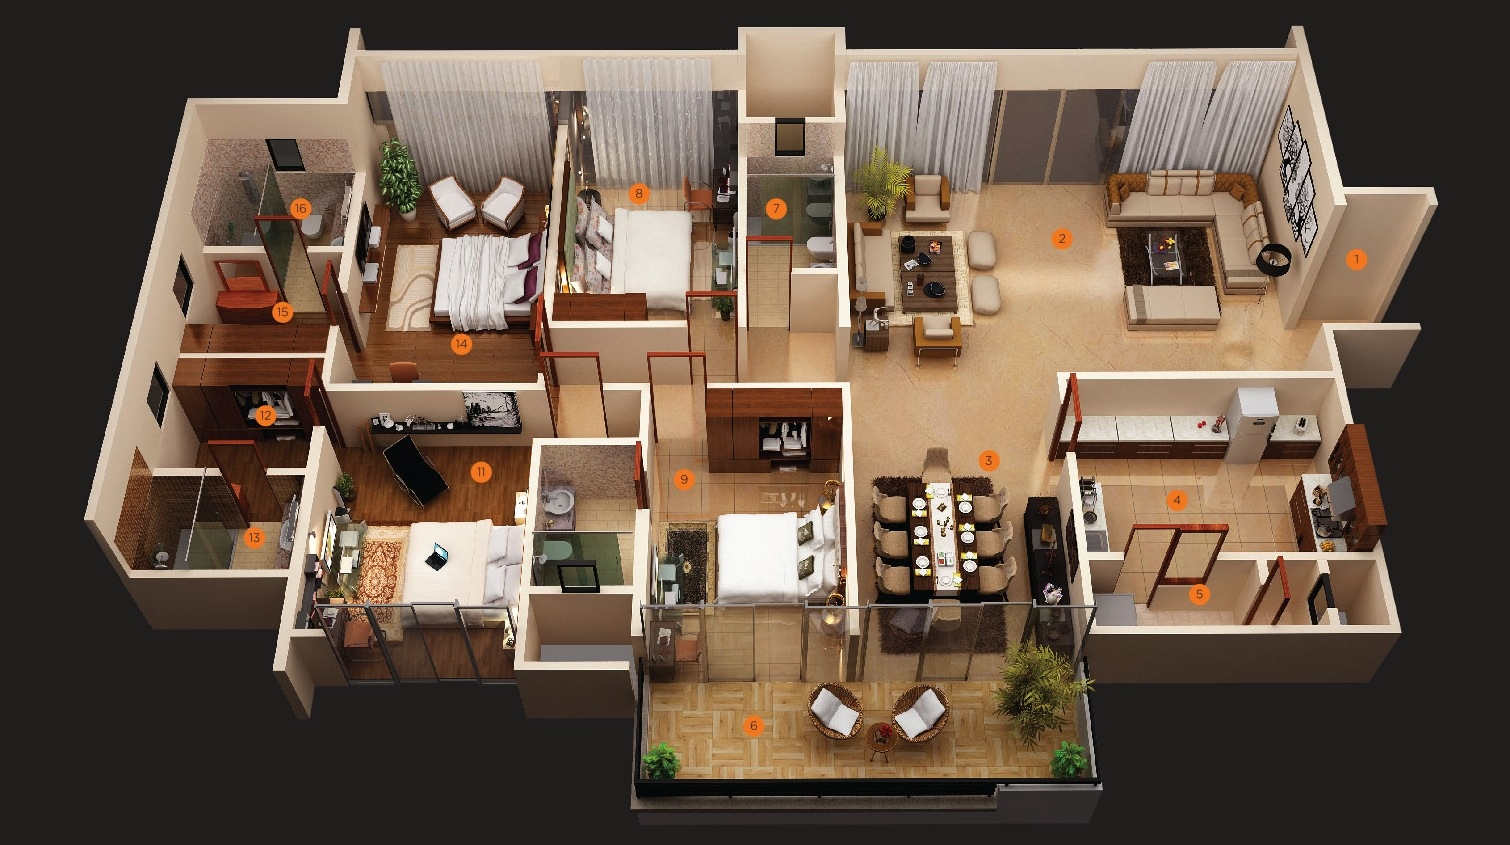 Modern 4 bedroom house plans decor units for Building a one room house